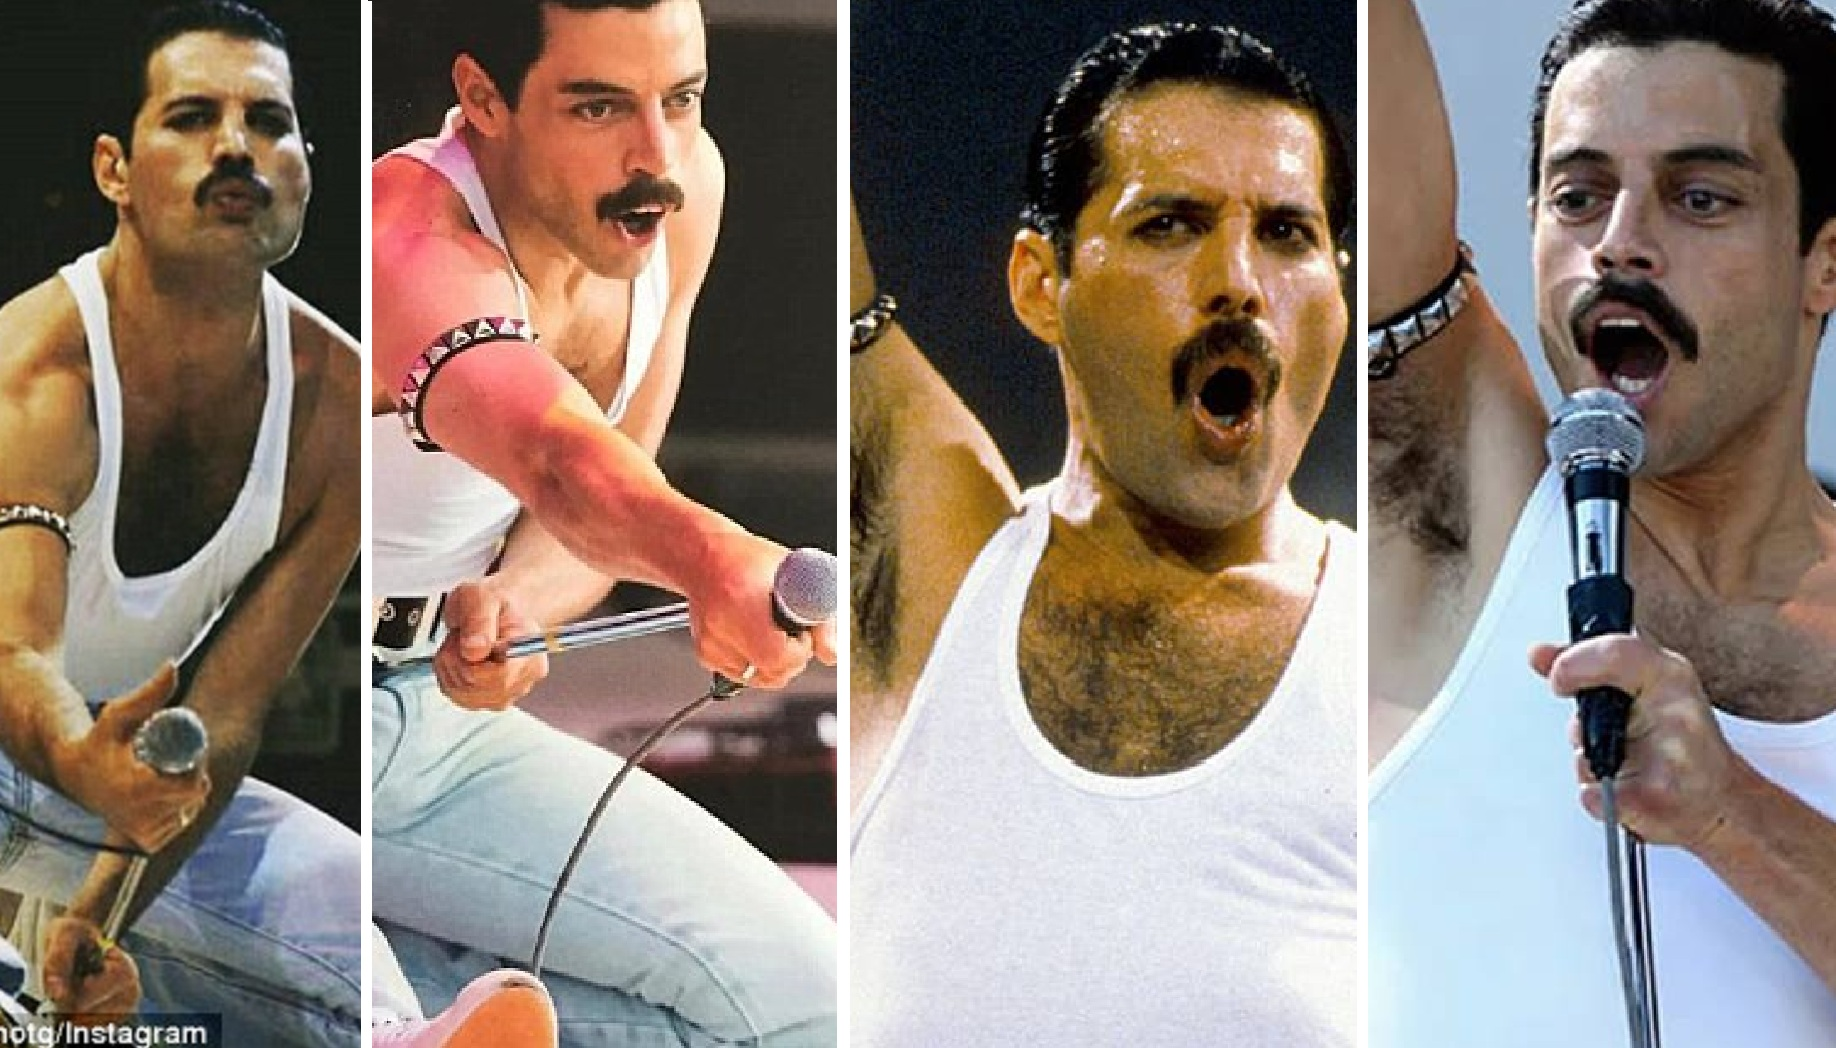 Rami Malek's Recreation of Freddie Mercury's Live Aid Performance Wickedly 'Identical' To The Original